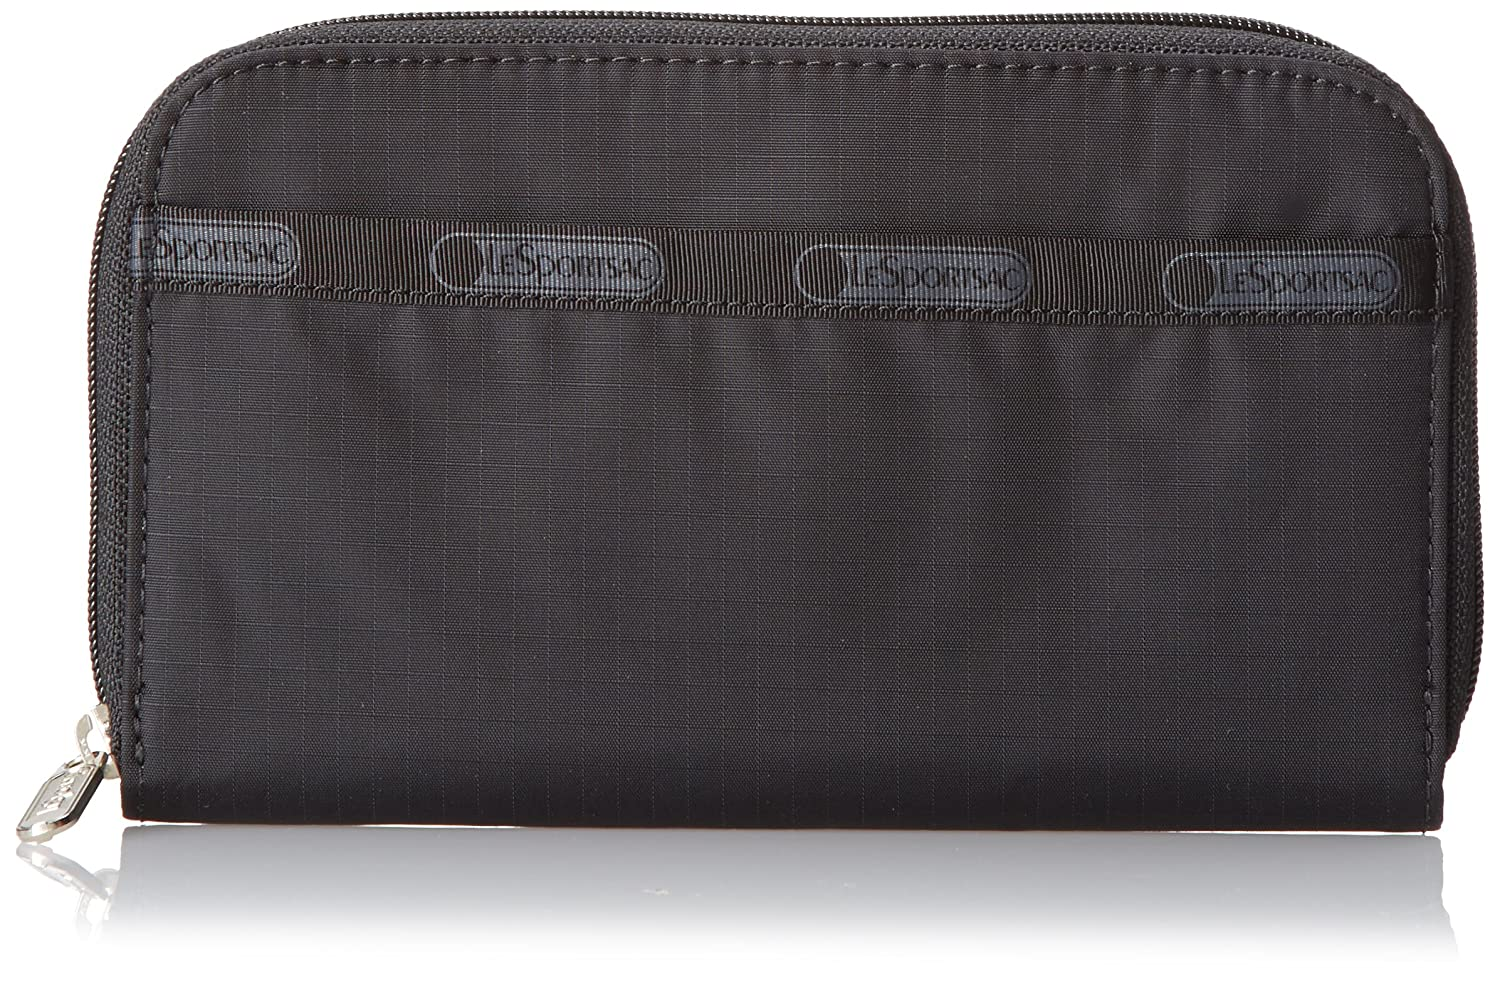 Black LeSportsac Lily Wallet, Black Crinkle Patent, One Size